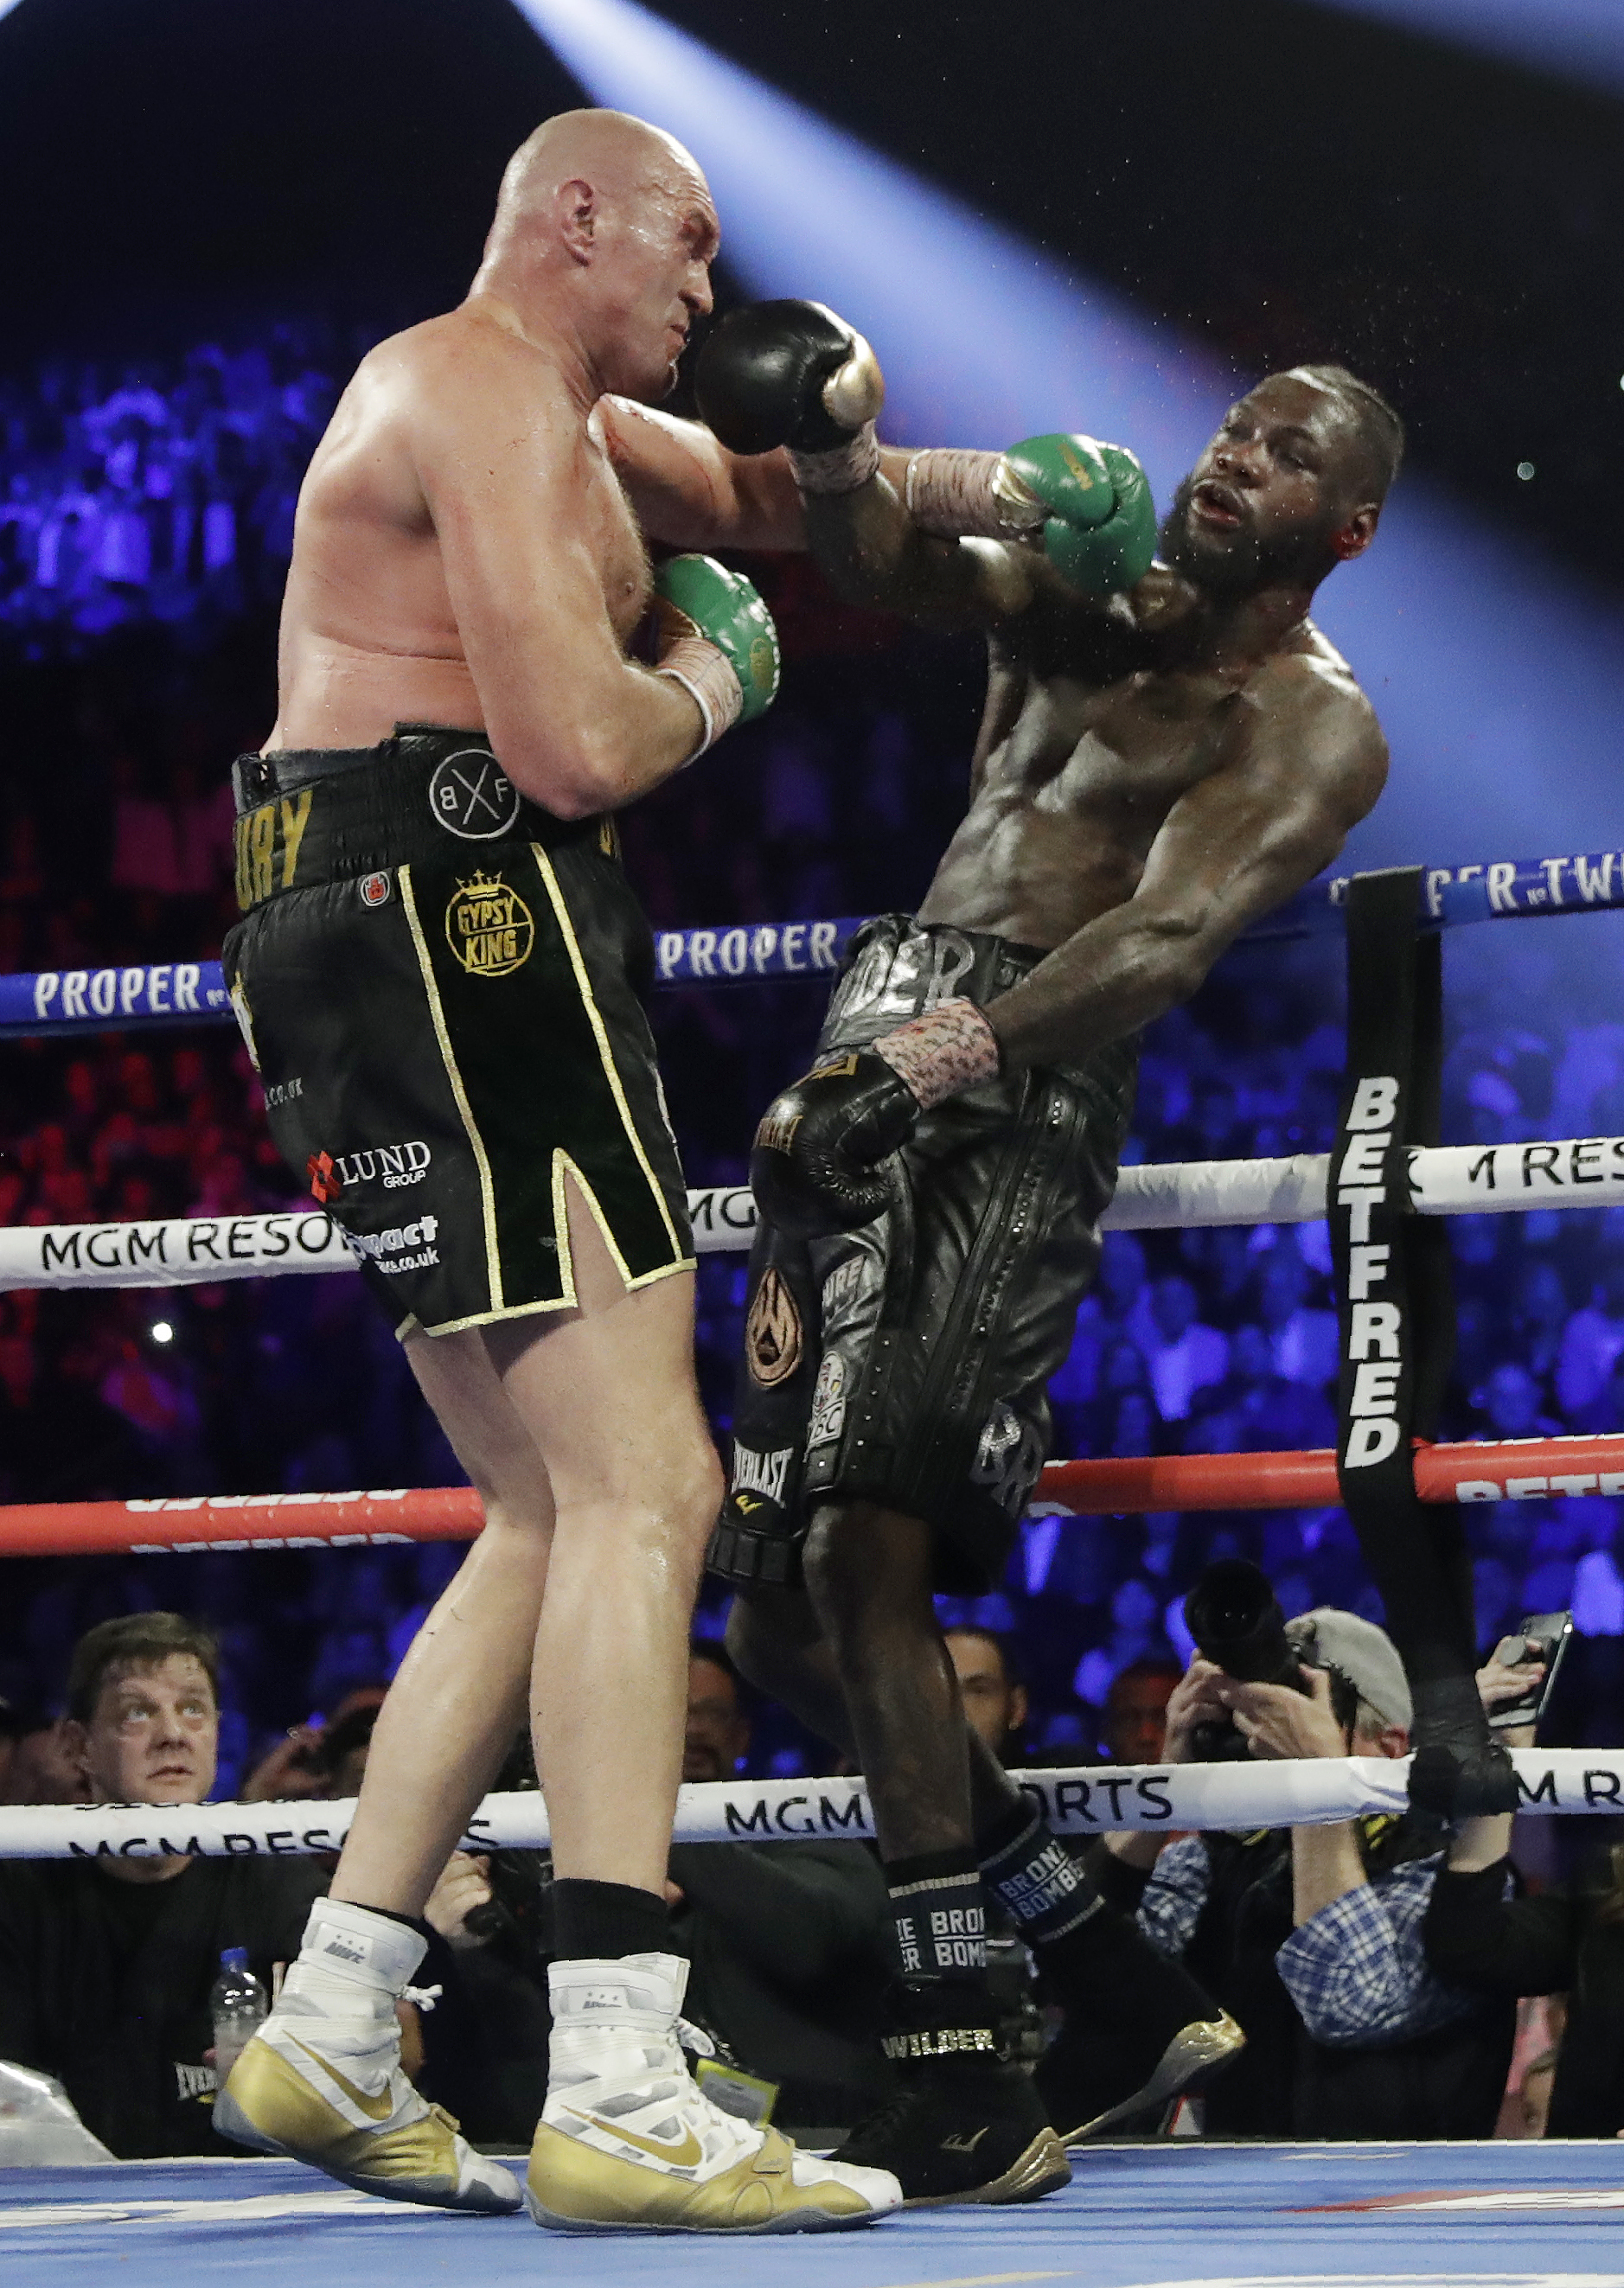 Tyson Fury, left, of England, lands a left to Deontay Wilder during a WBC heavyweight championship boxing match Saturday, Feb. 22, 2020, in Las Vegas. (AP Photo/Isaac Brekken)